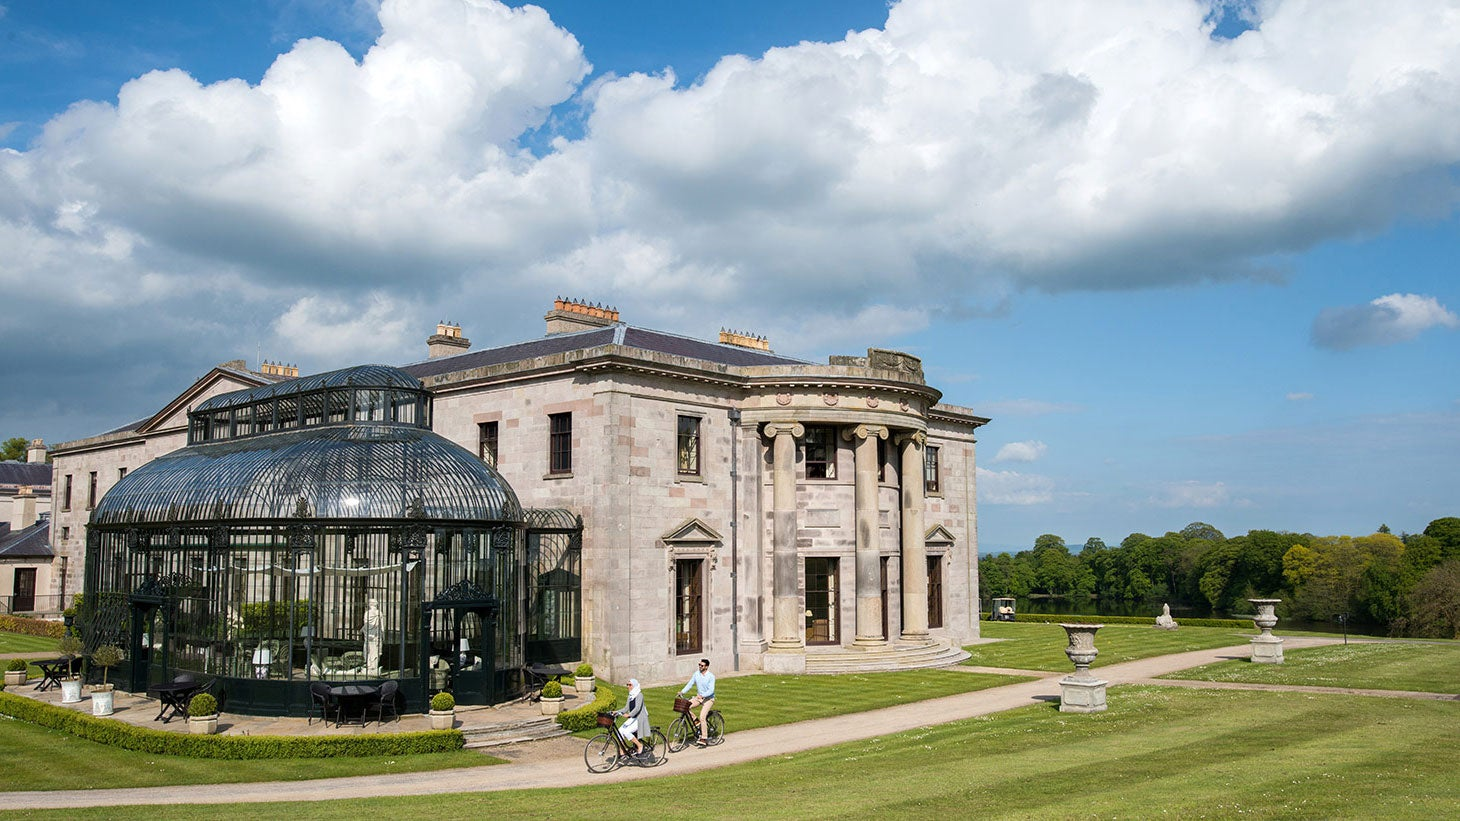 Enjoy luxurious Ballyfin Demesne.